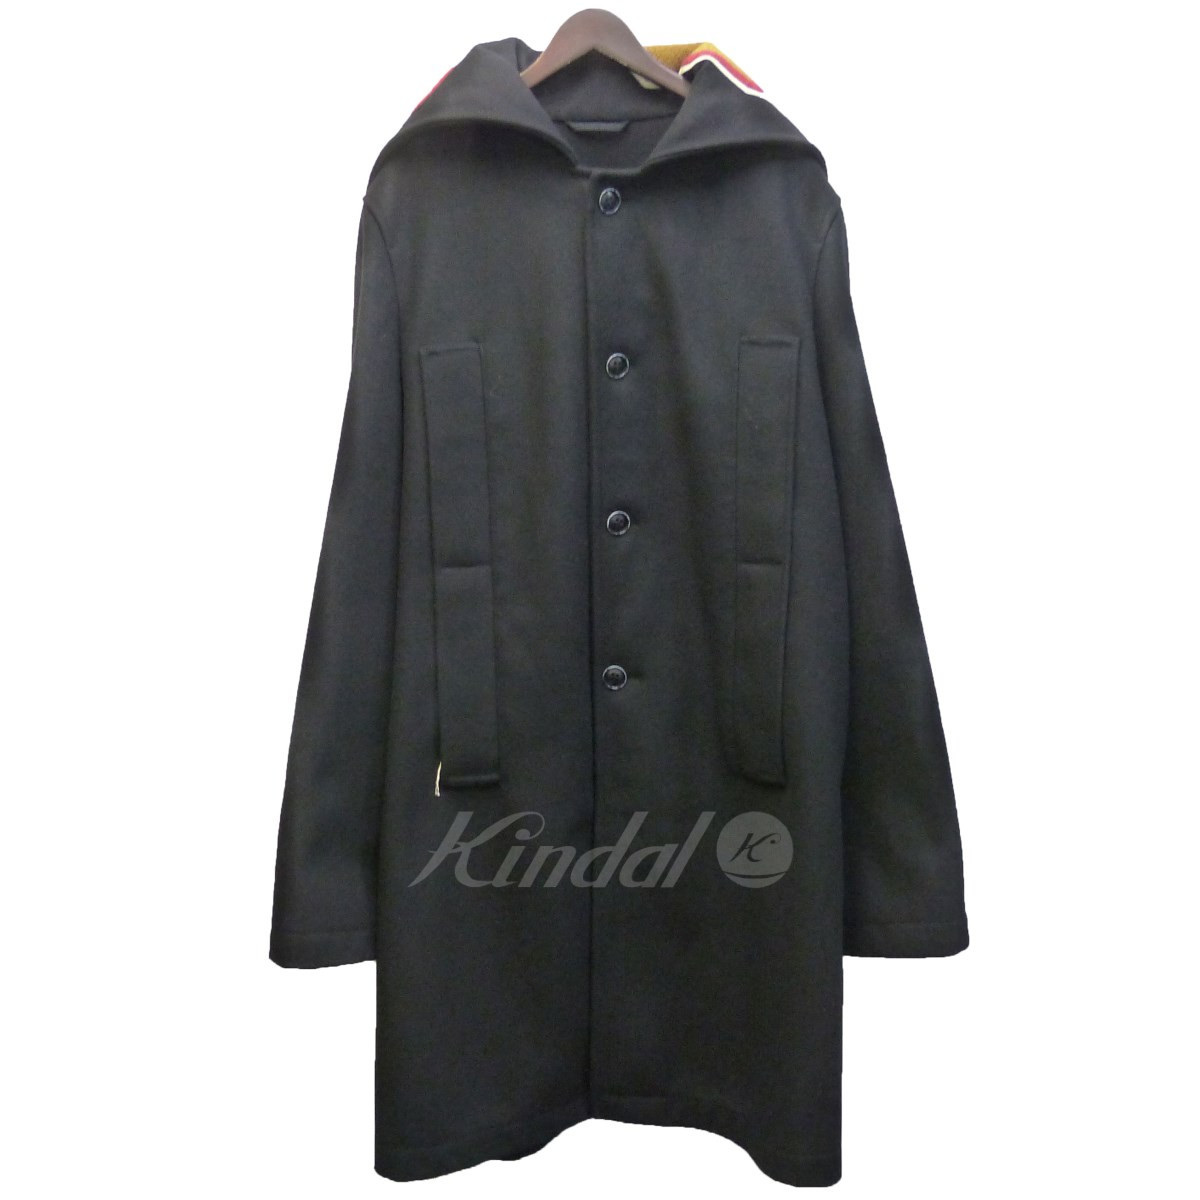 【中古】RAF SIMONS 16AW 「Big coat with destroyed graphic backflap」 【送料無料】 【026669】 【KIND1550】